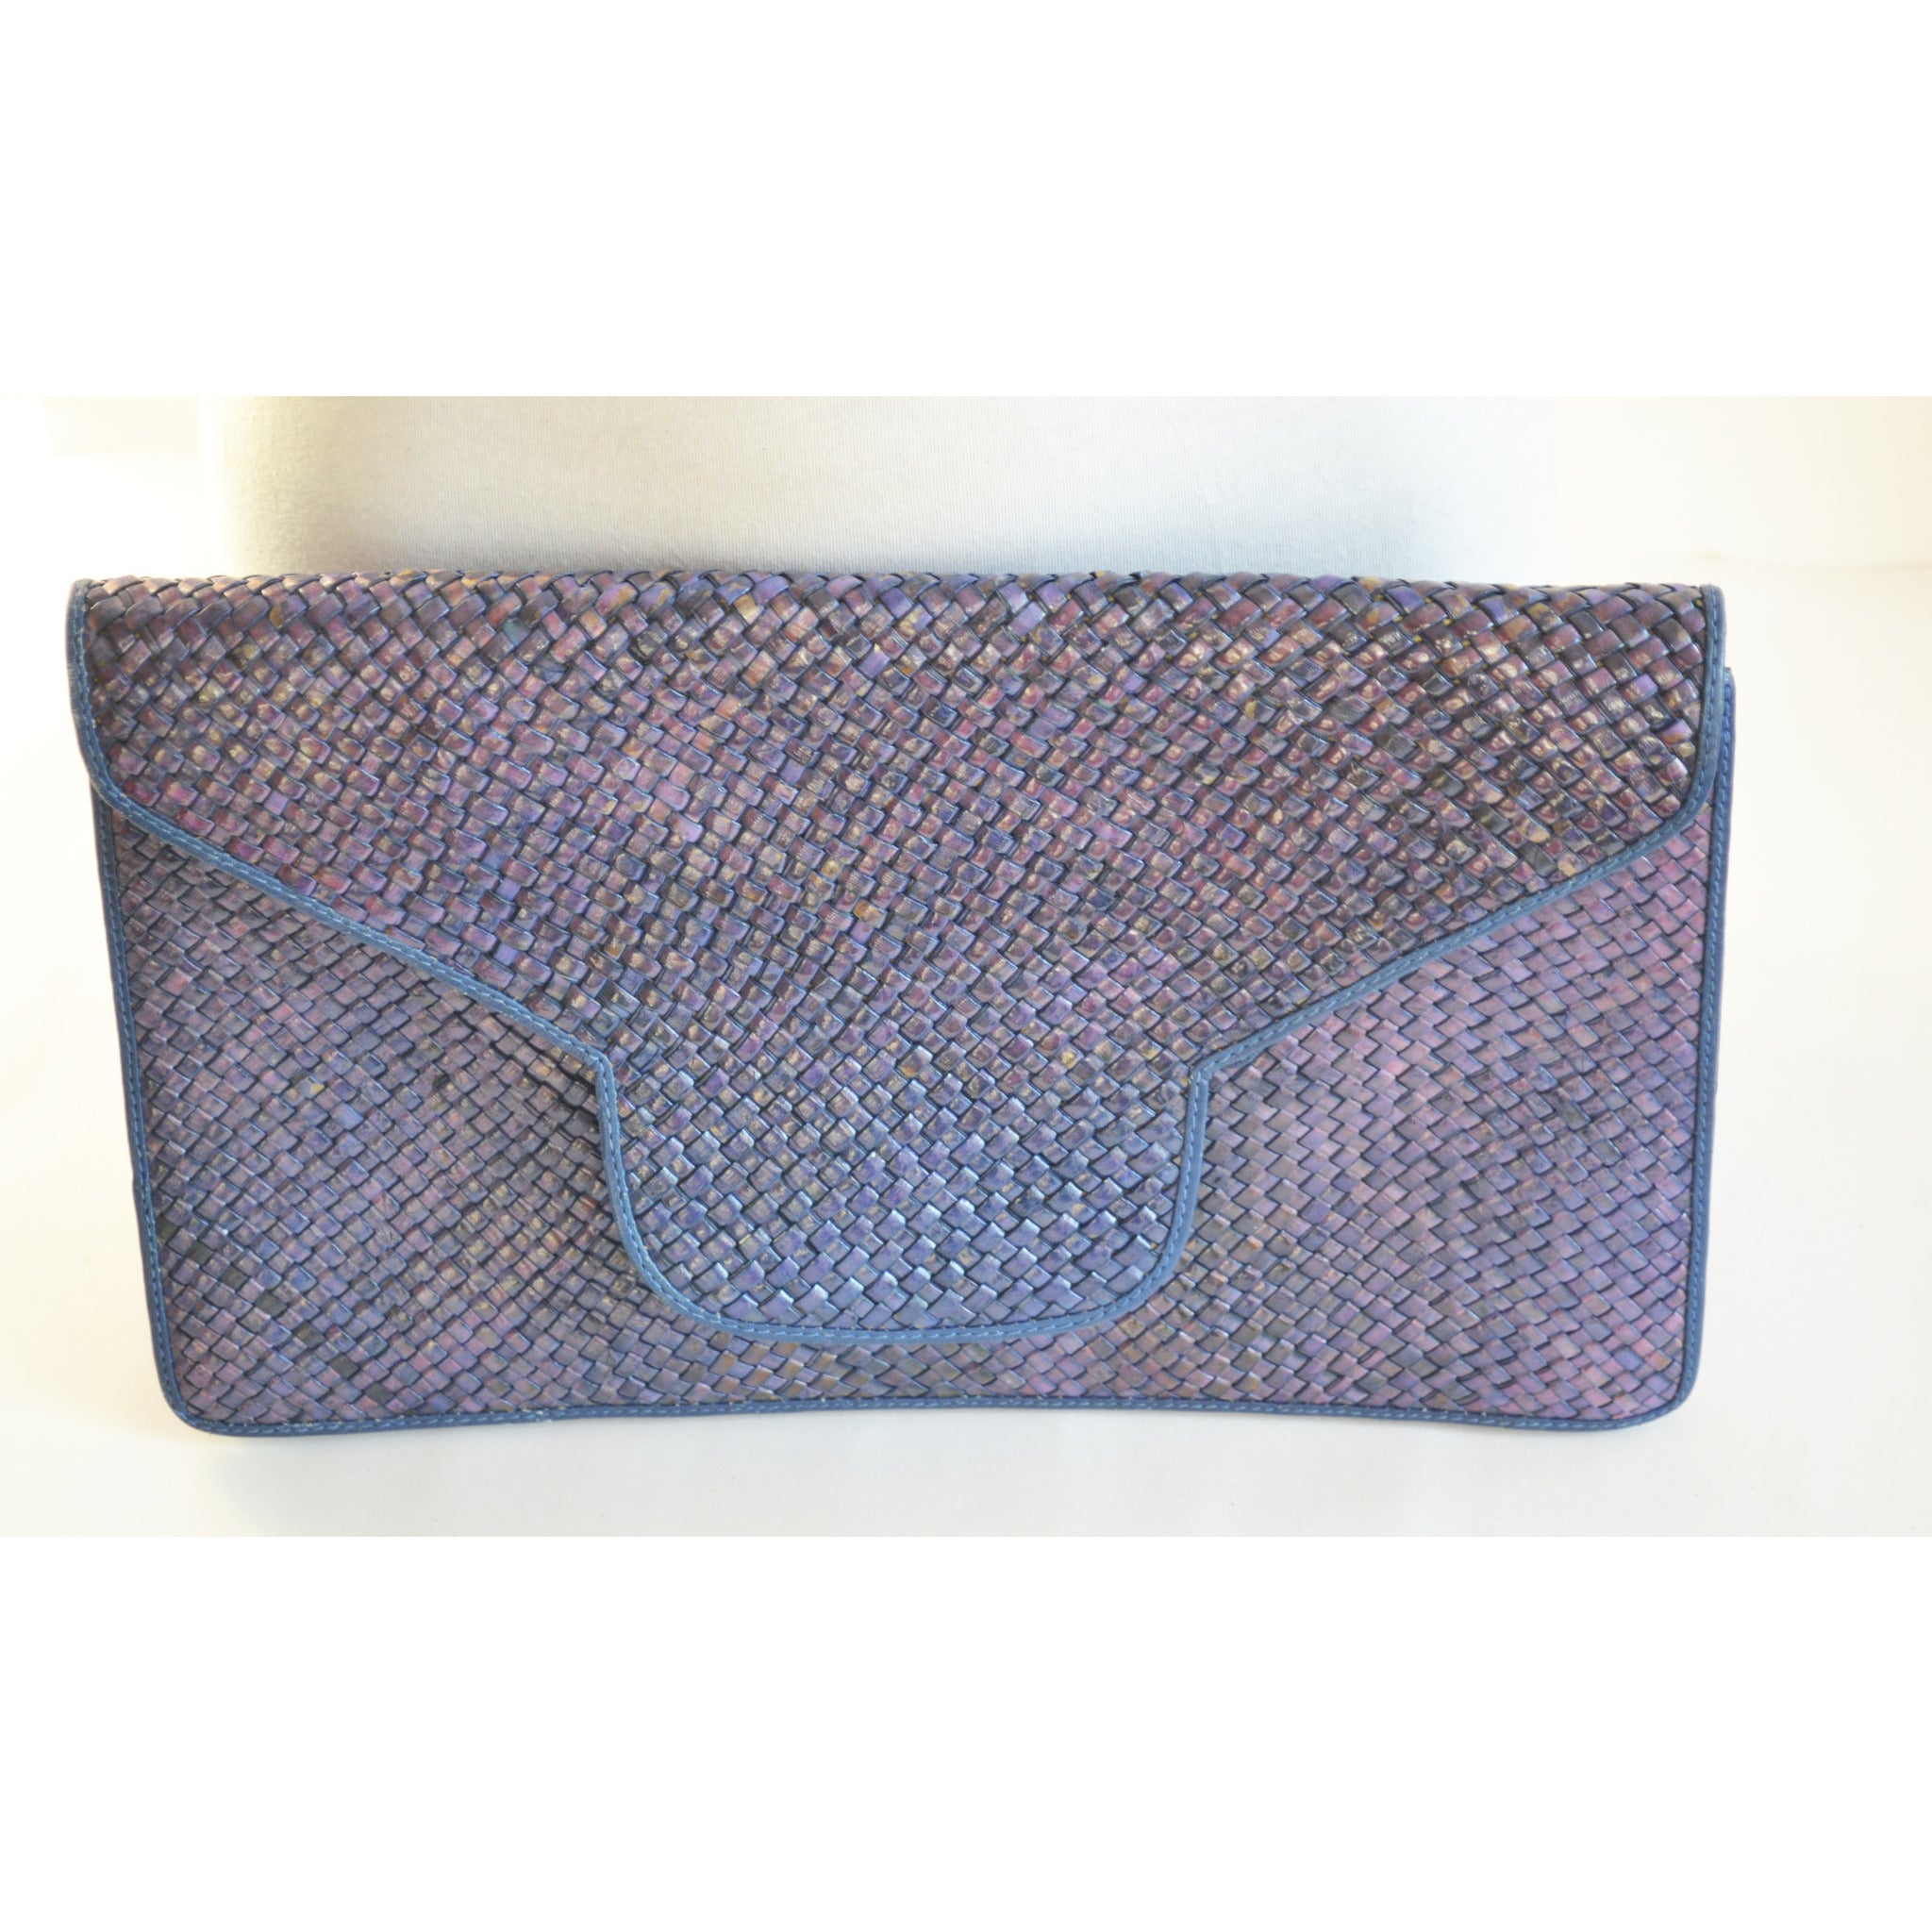 Vintage Blue Wicker & Leather Purse By Susan Gail